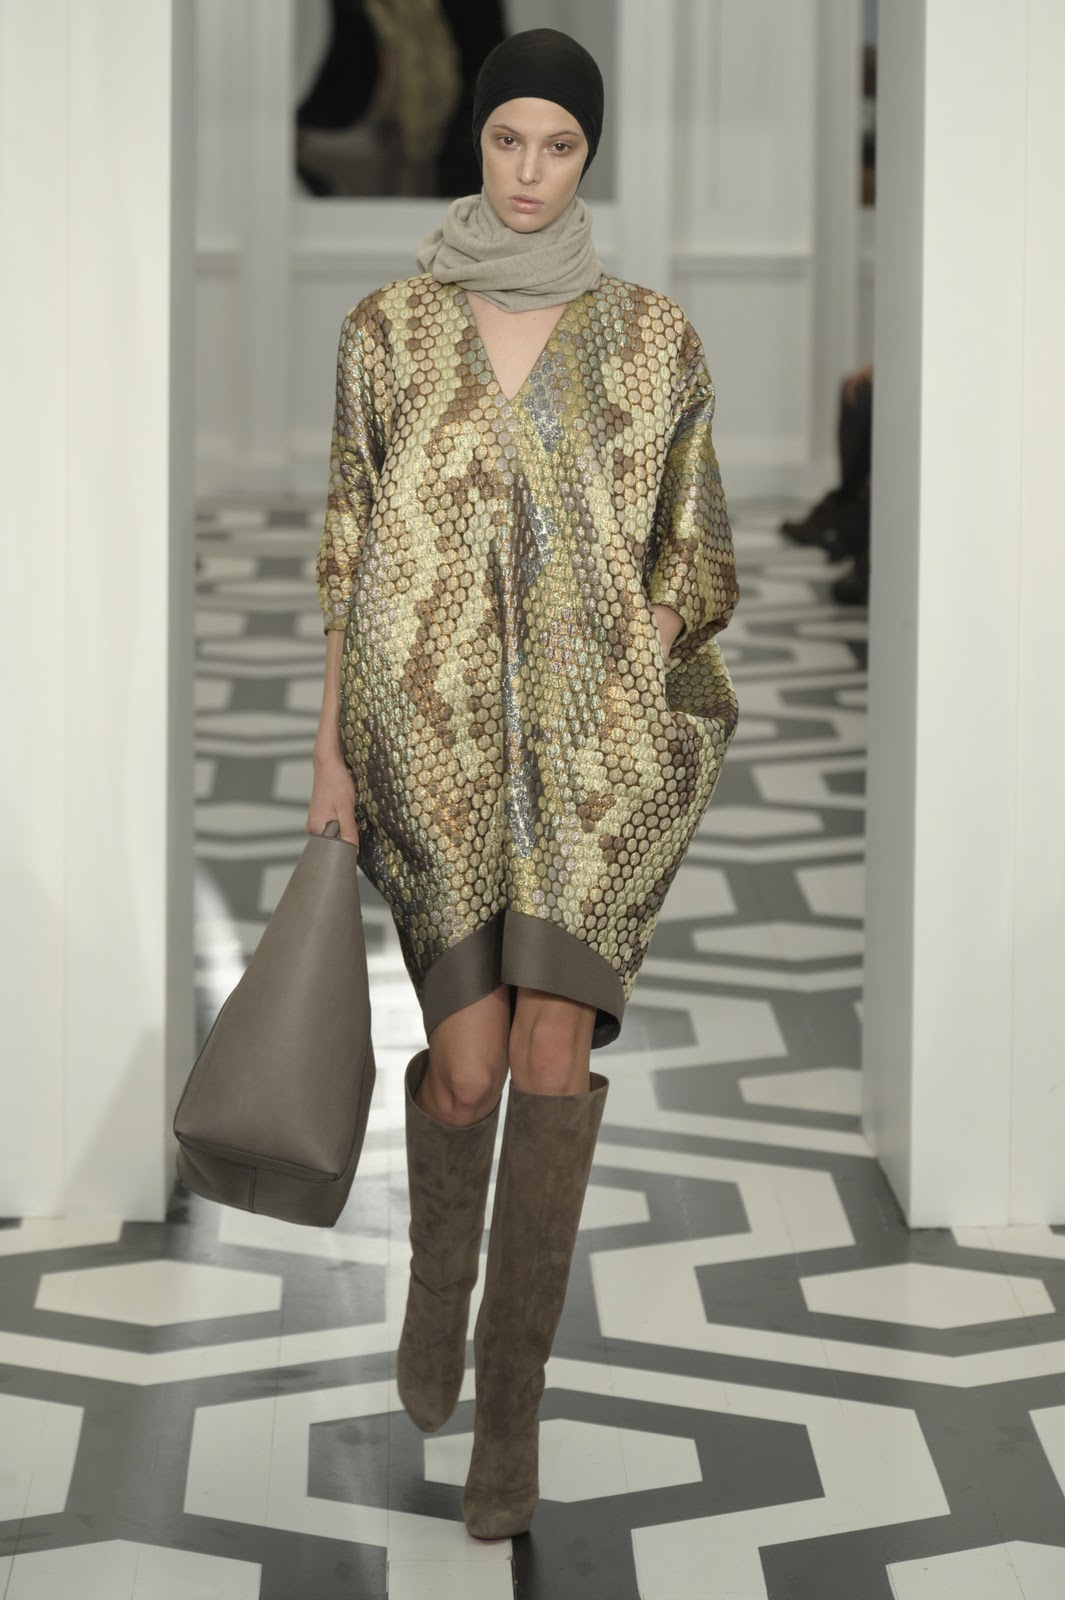 burberry prorsum quilted leather jacket 2011  coats - the Cocoon silhouette stood out at Victoria Beckham's NYFW